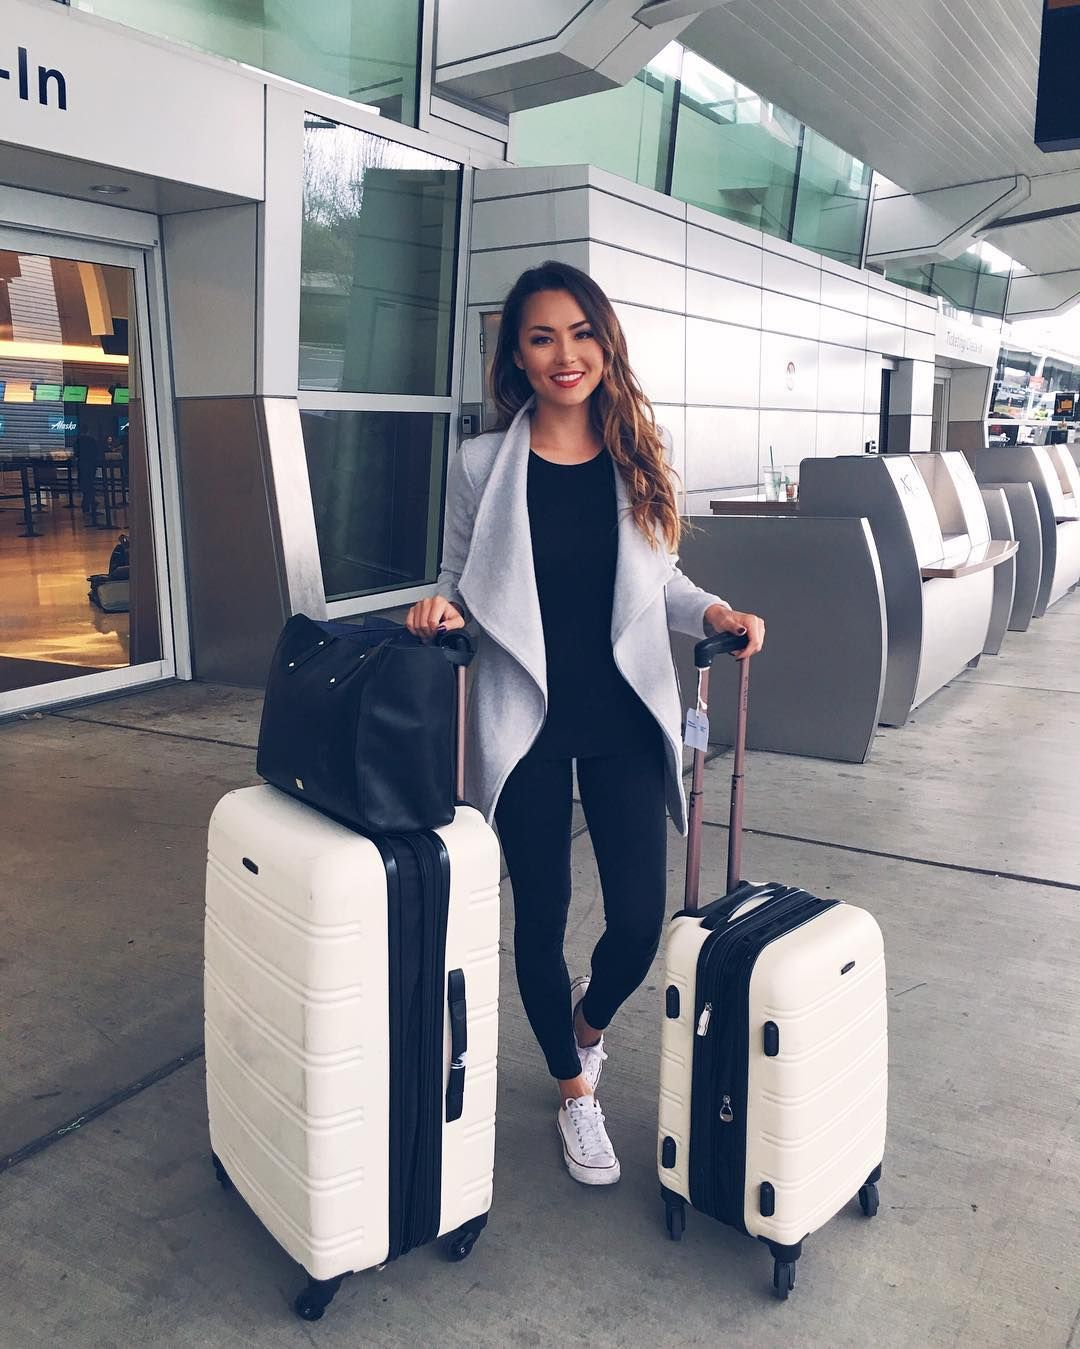 Please airlines. Create a special class for beautifull women